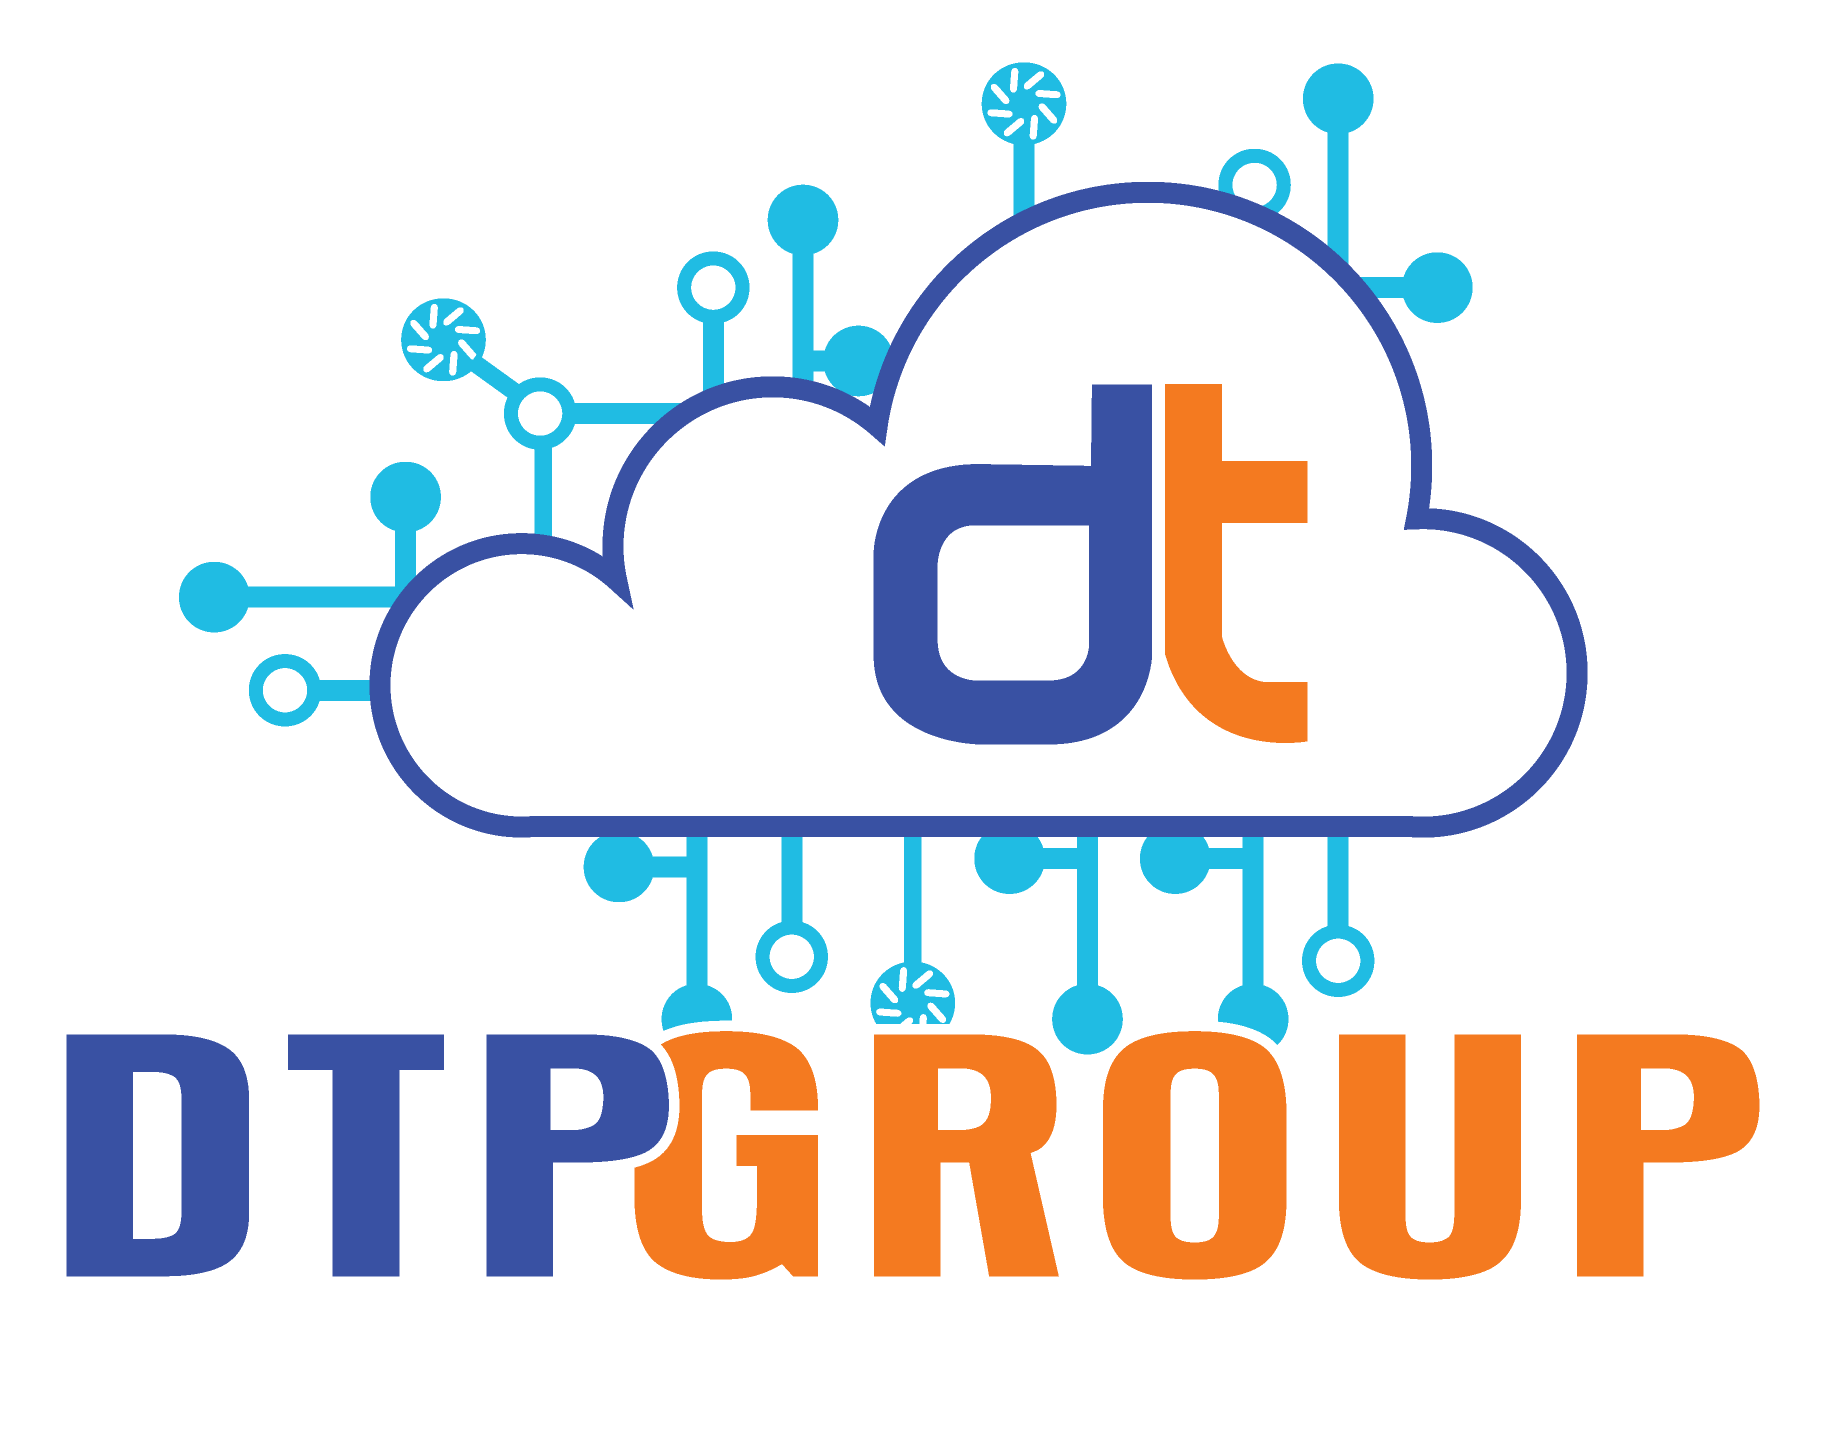 DTPGROUP